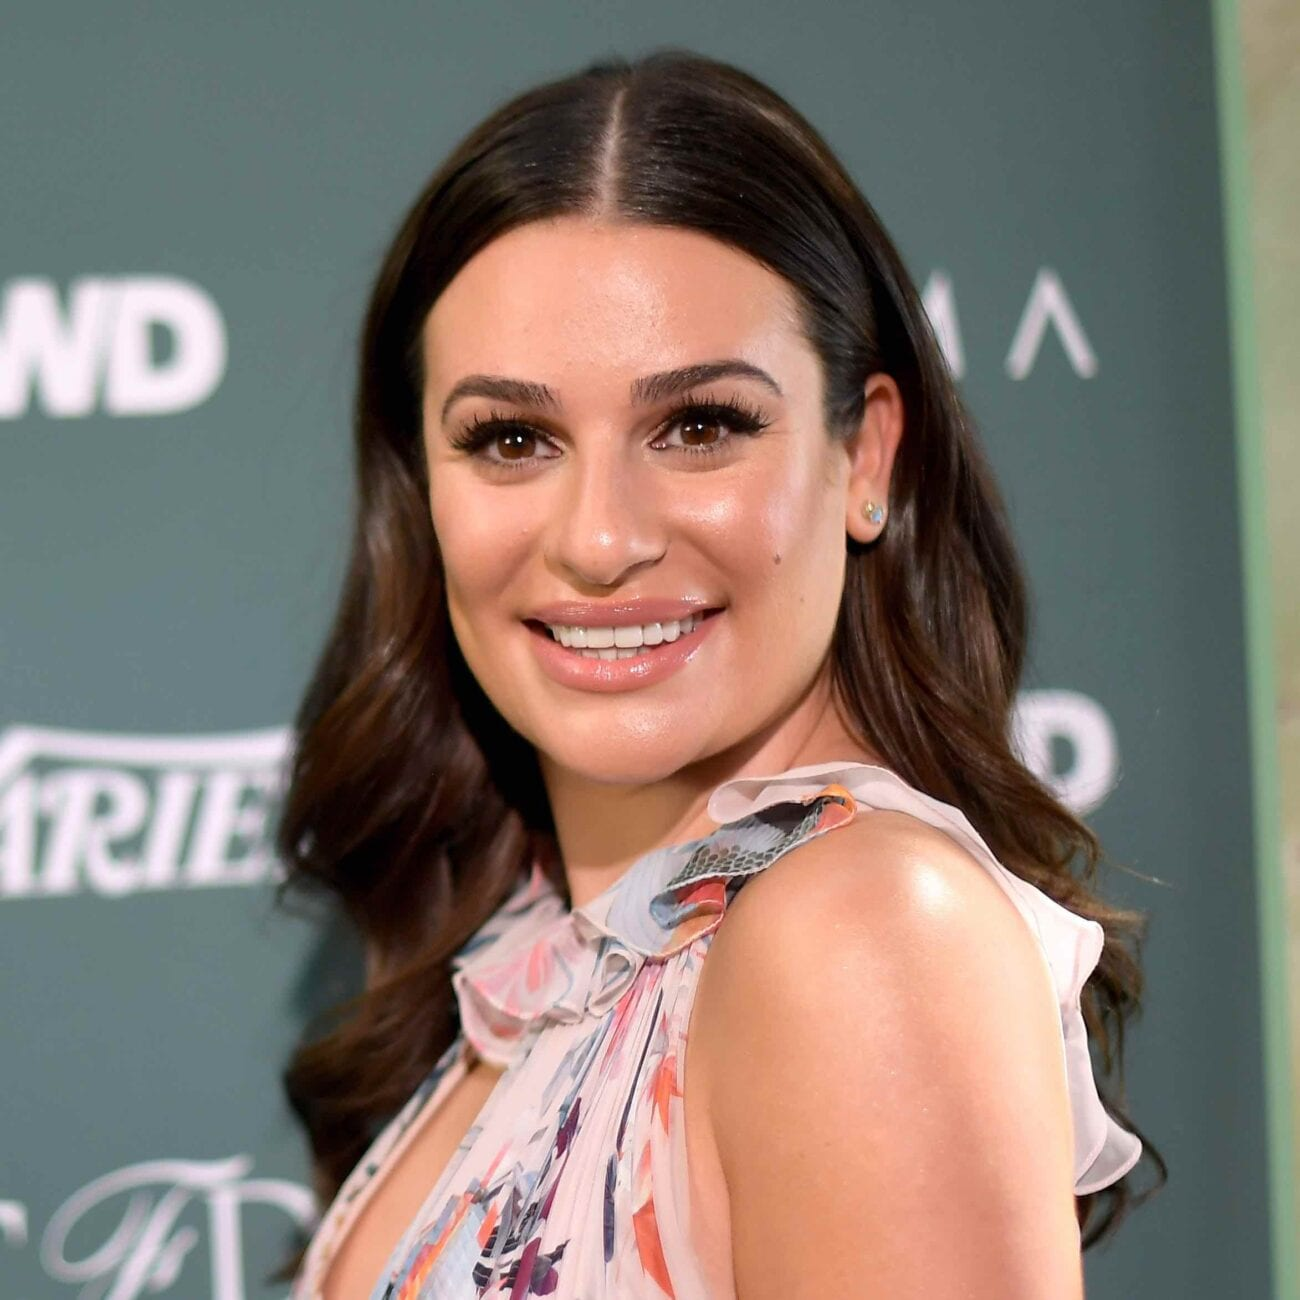 Lea Michele may have played a diva on 'Glee', but recent allegations are proving she's racist and cruel to anyone that isn't her.